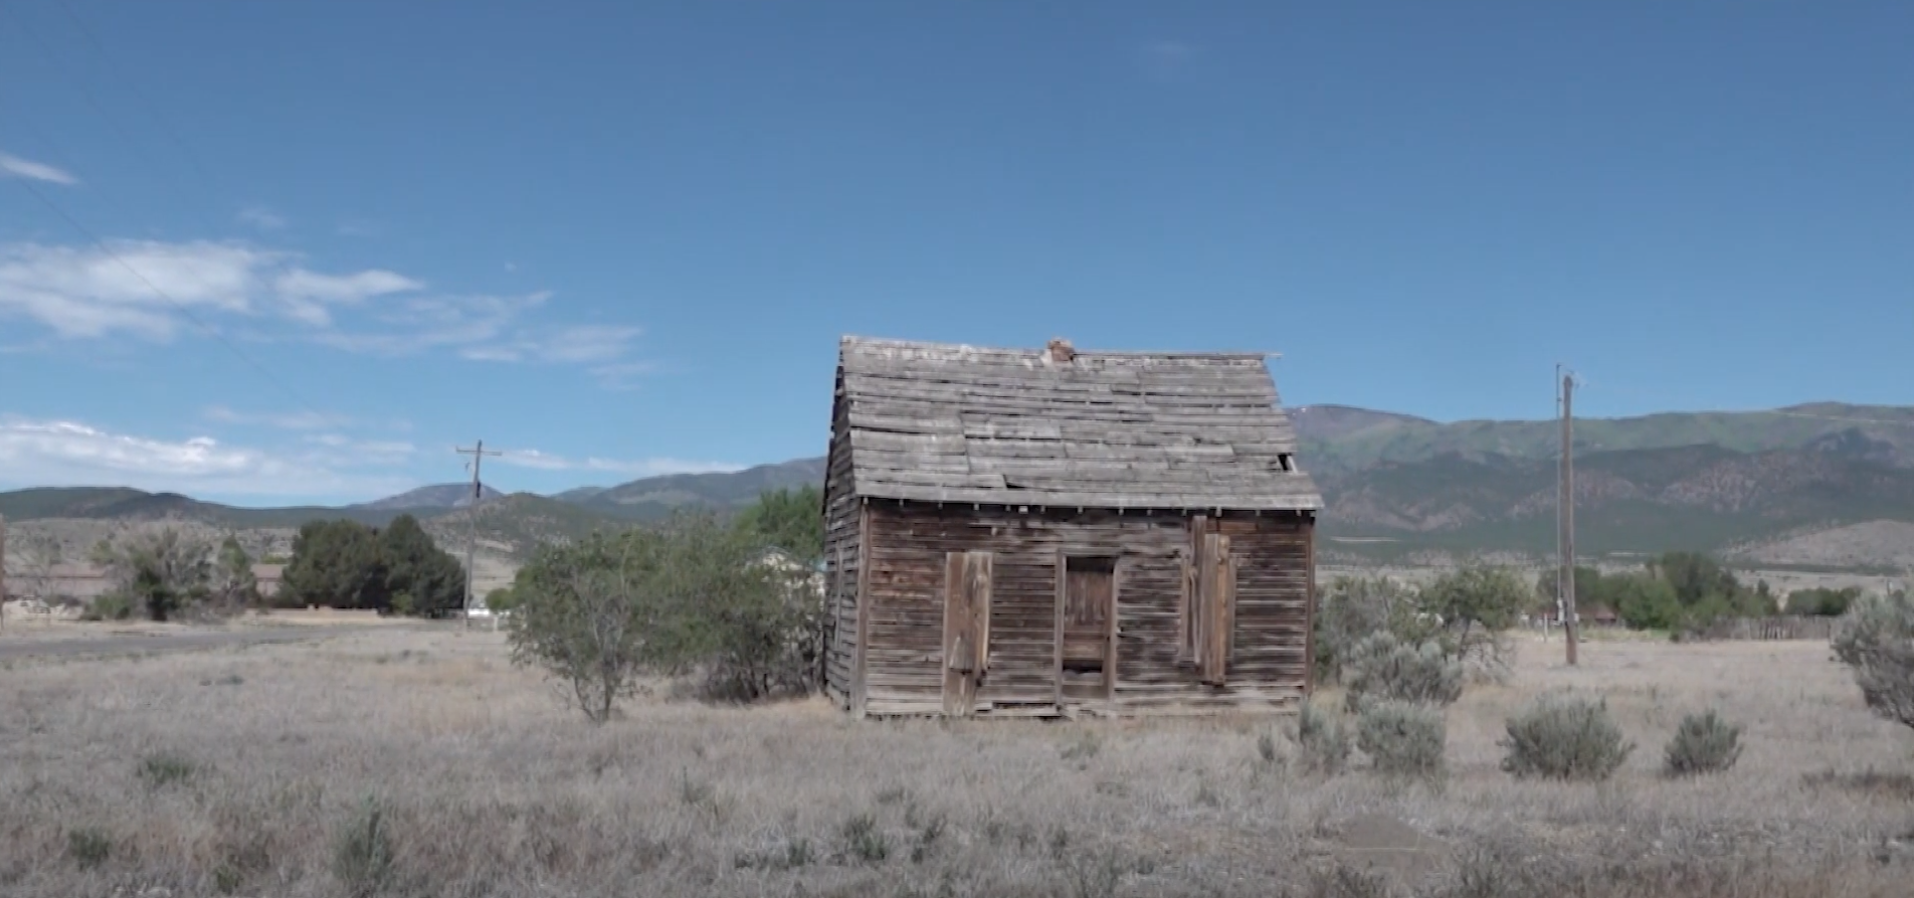 Chasing Butch Cassidy in Piute County